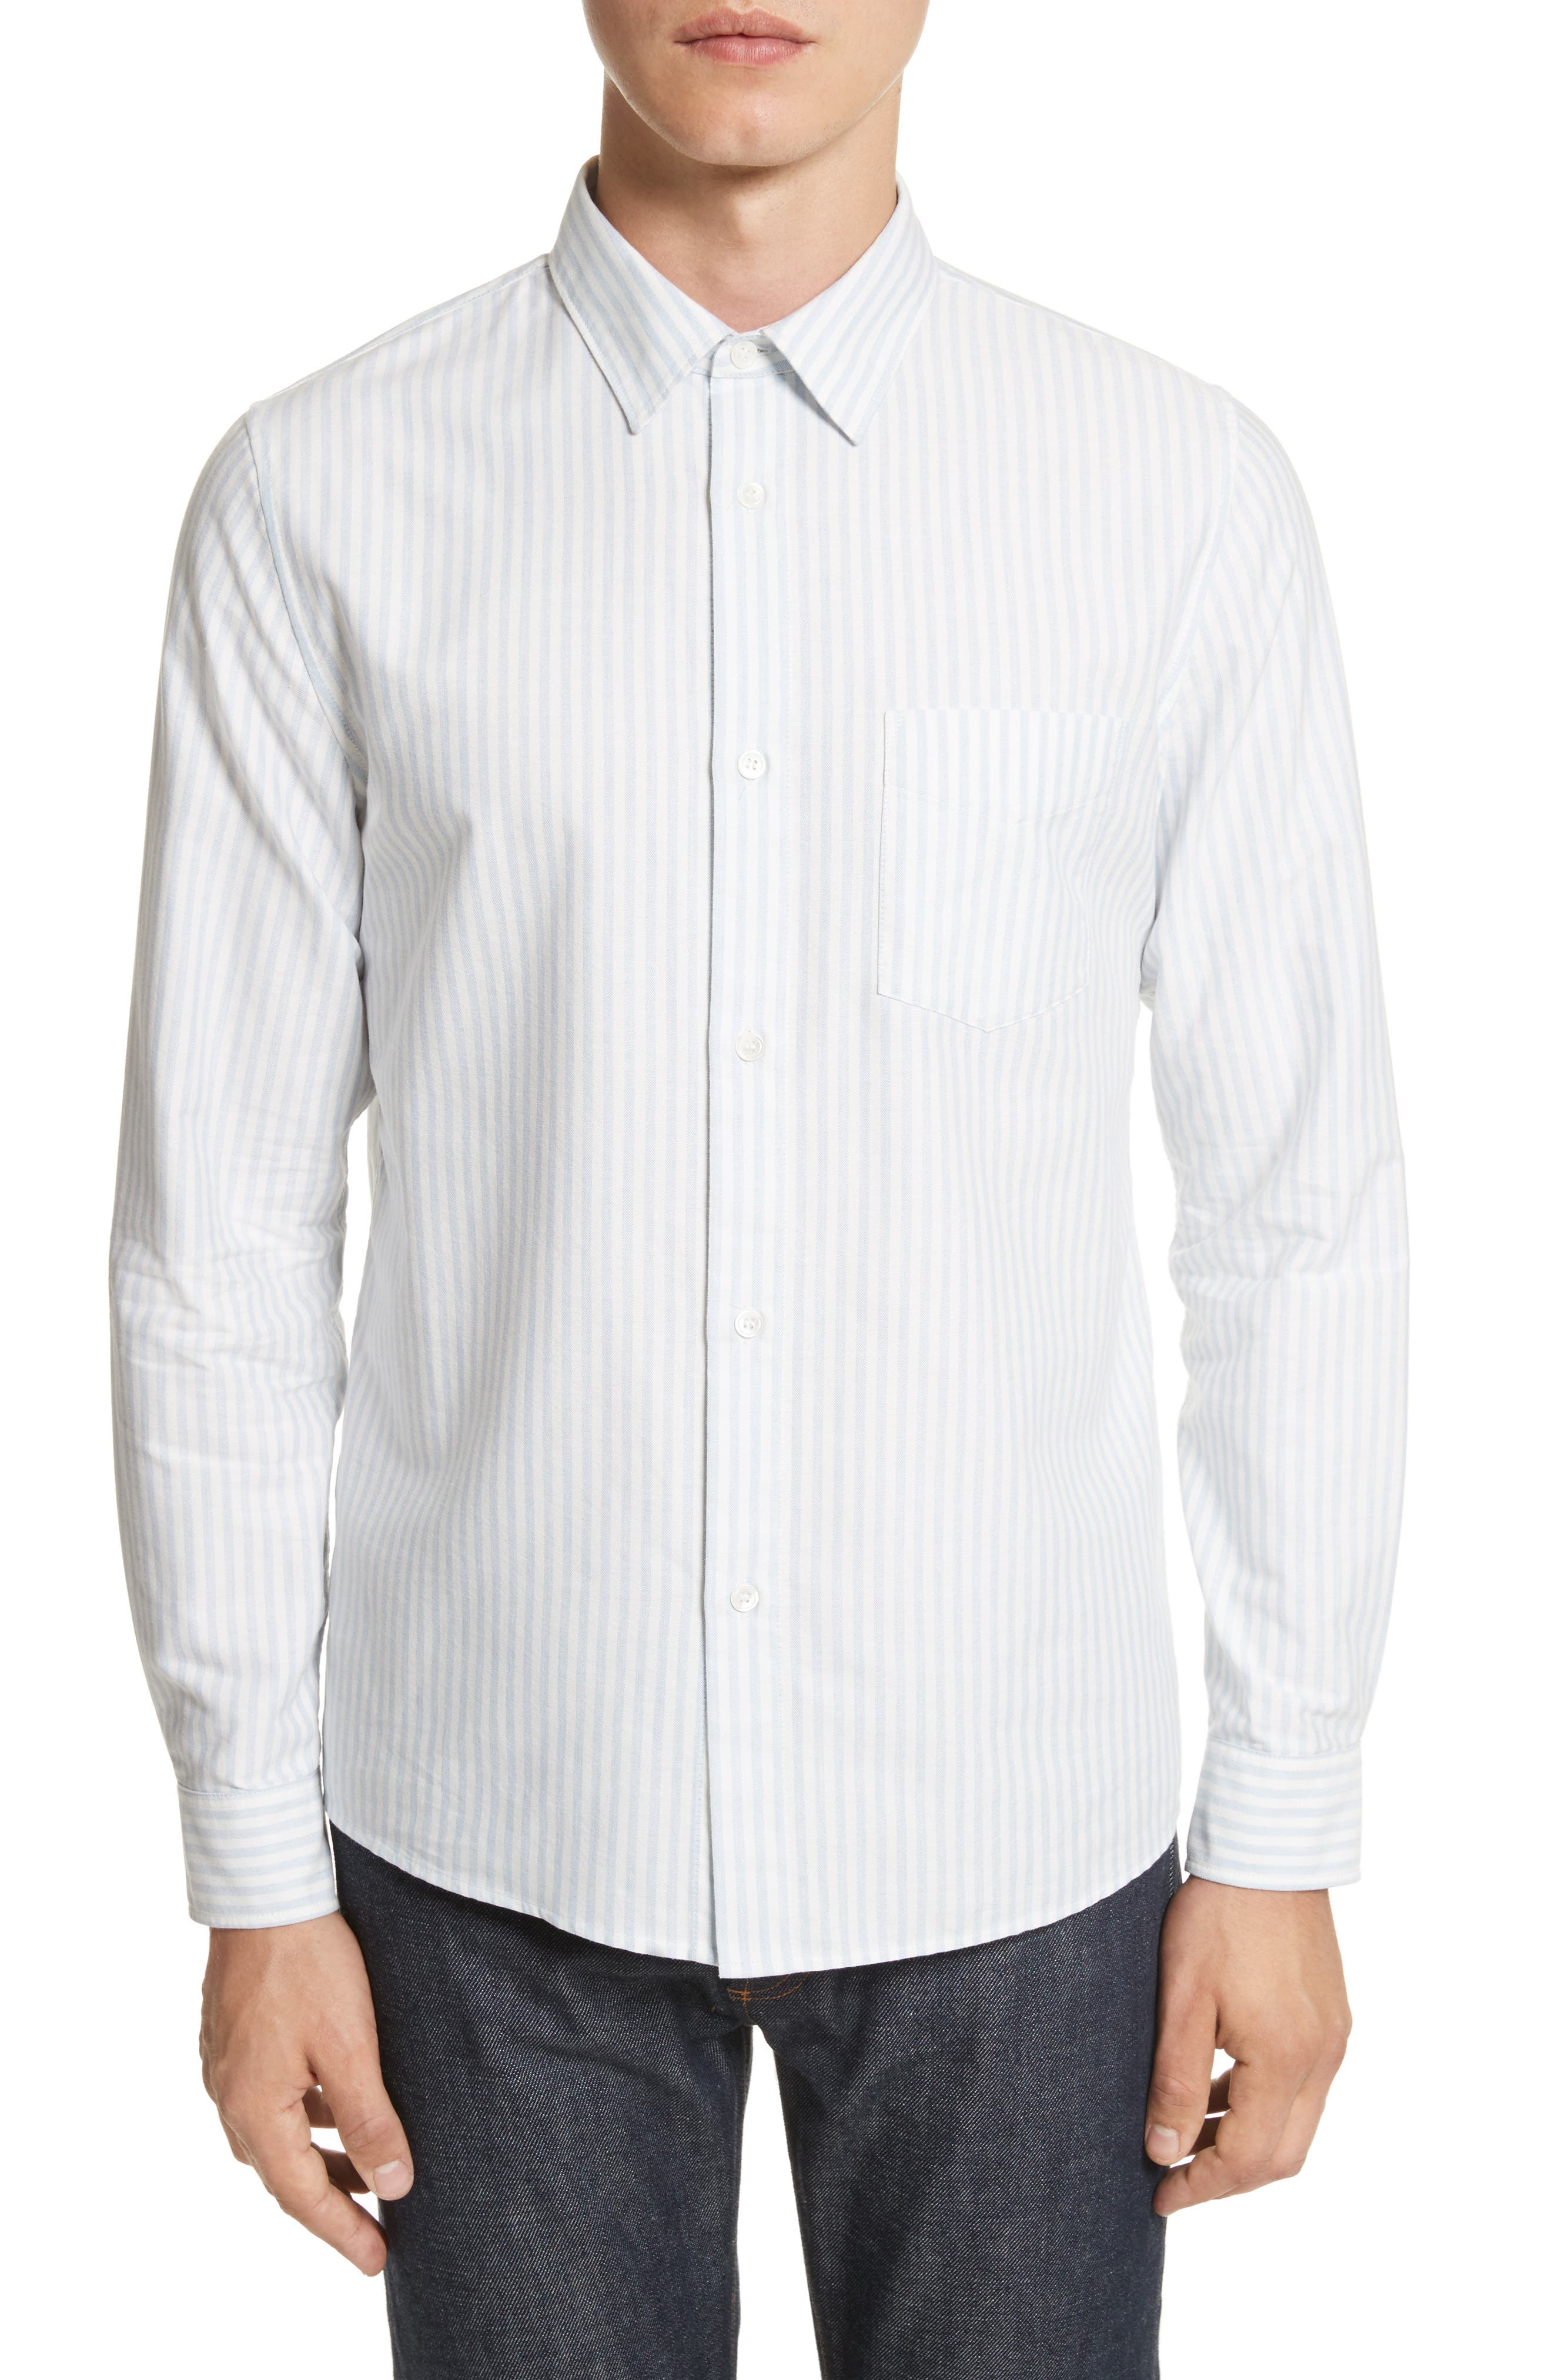 Oliver Stripe Oxford Shirt,                         Main,                         color, Blue